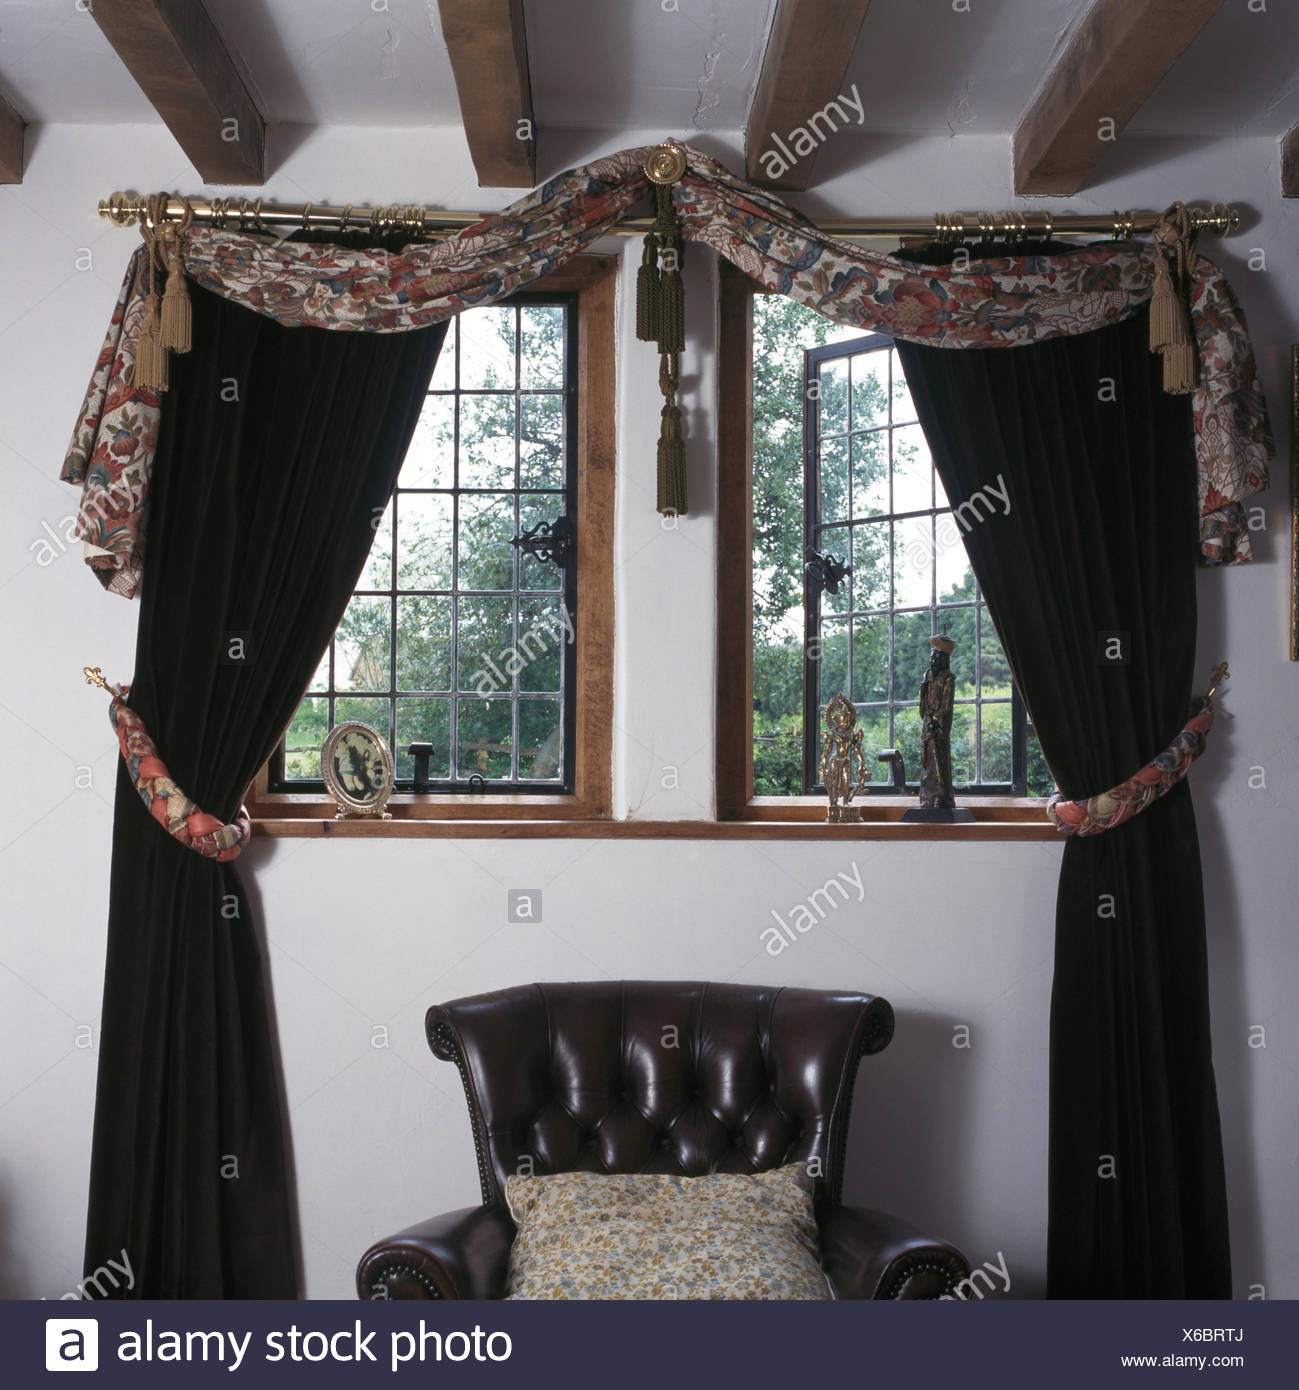 Draped Fabric And Black Curtains On Lattice Window Above Black Leather  Chair In Nineties Bedroom